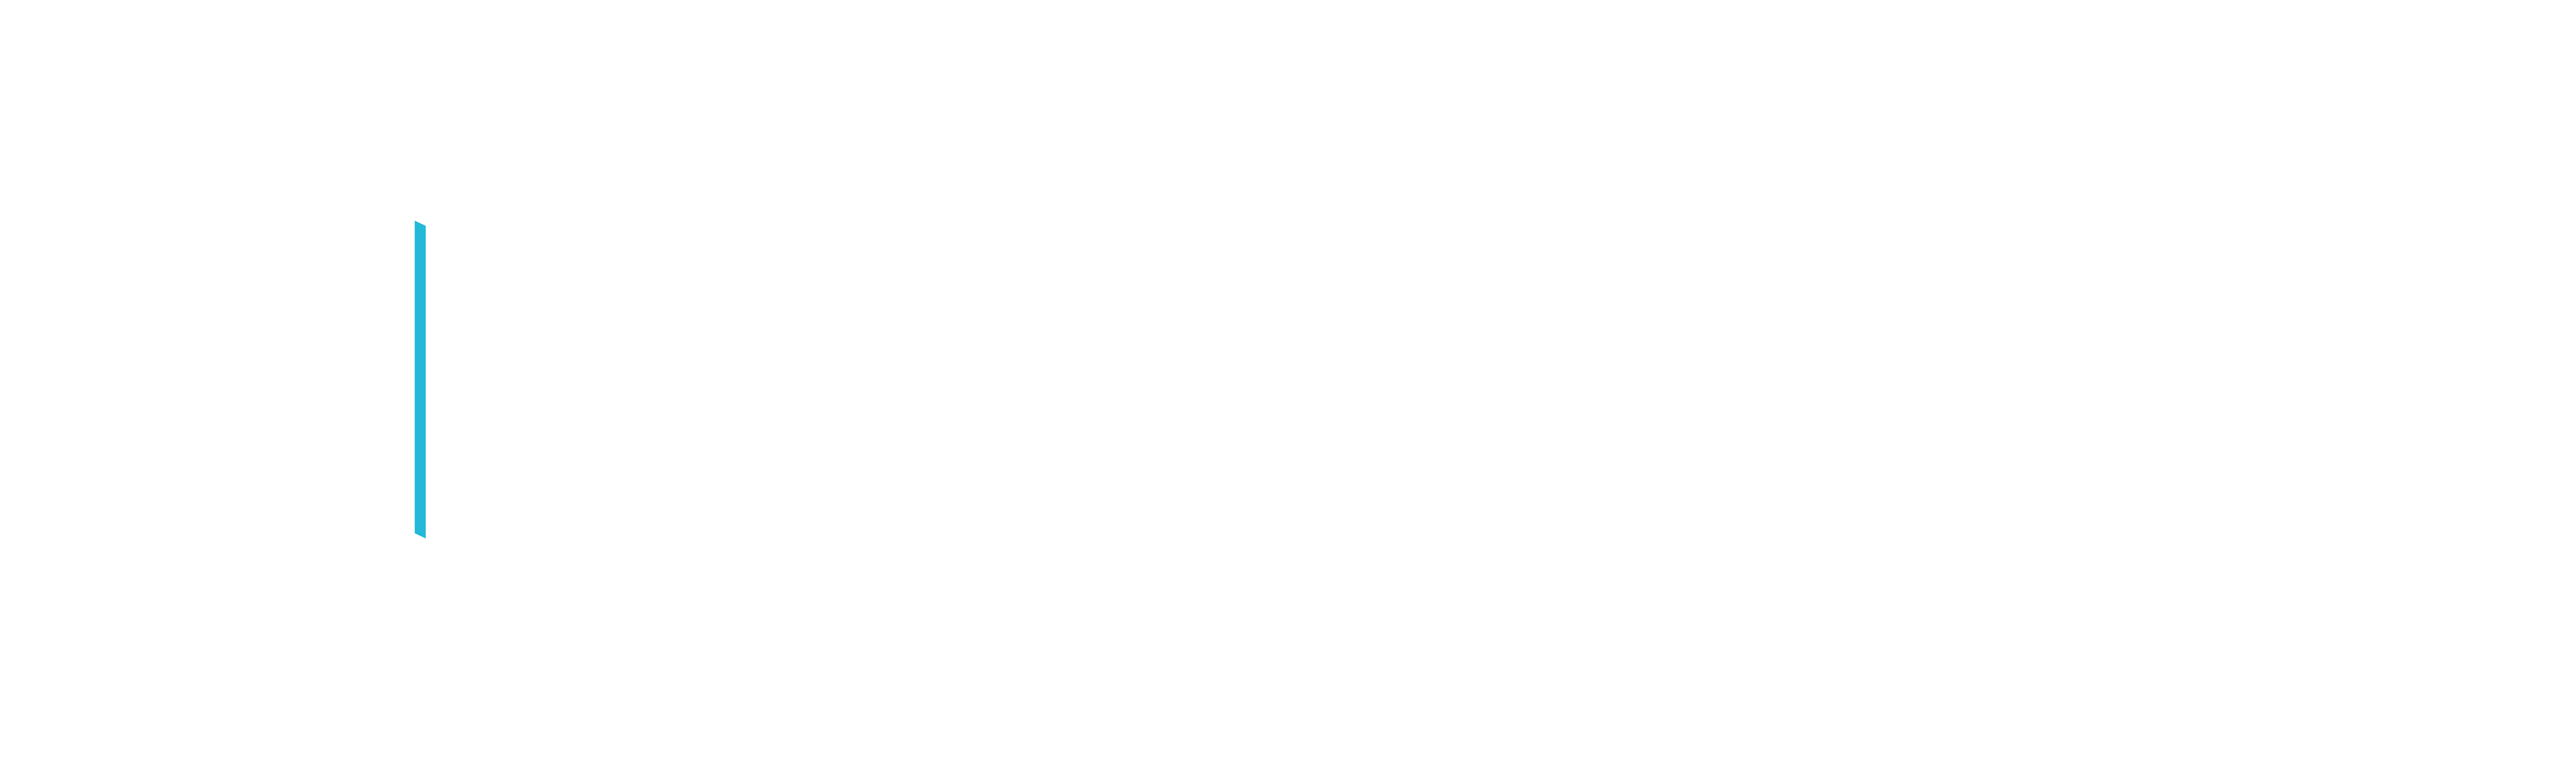 Department of Music Education